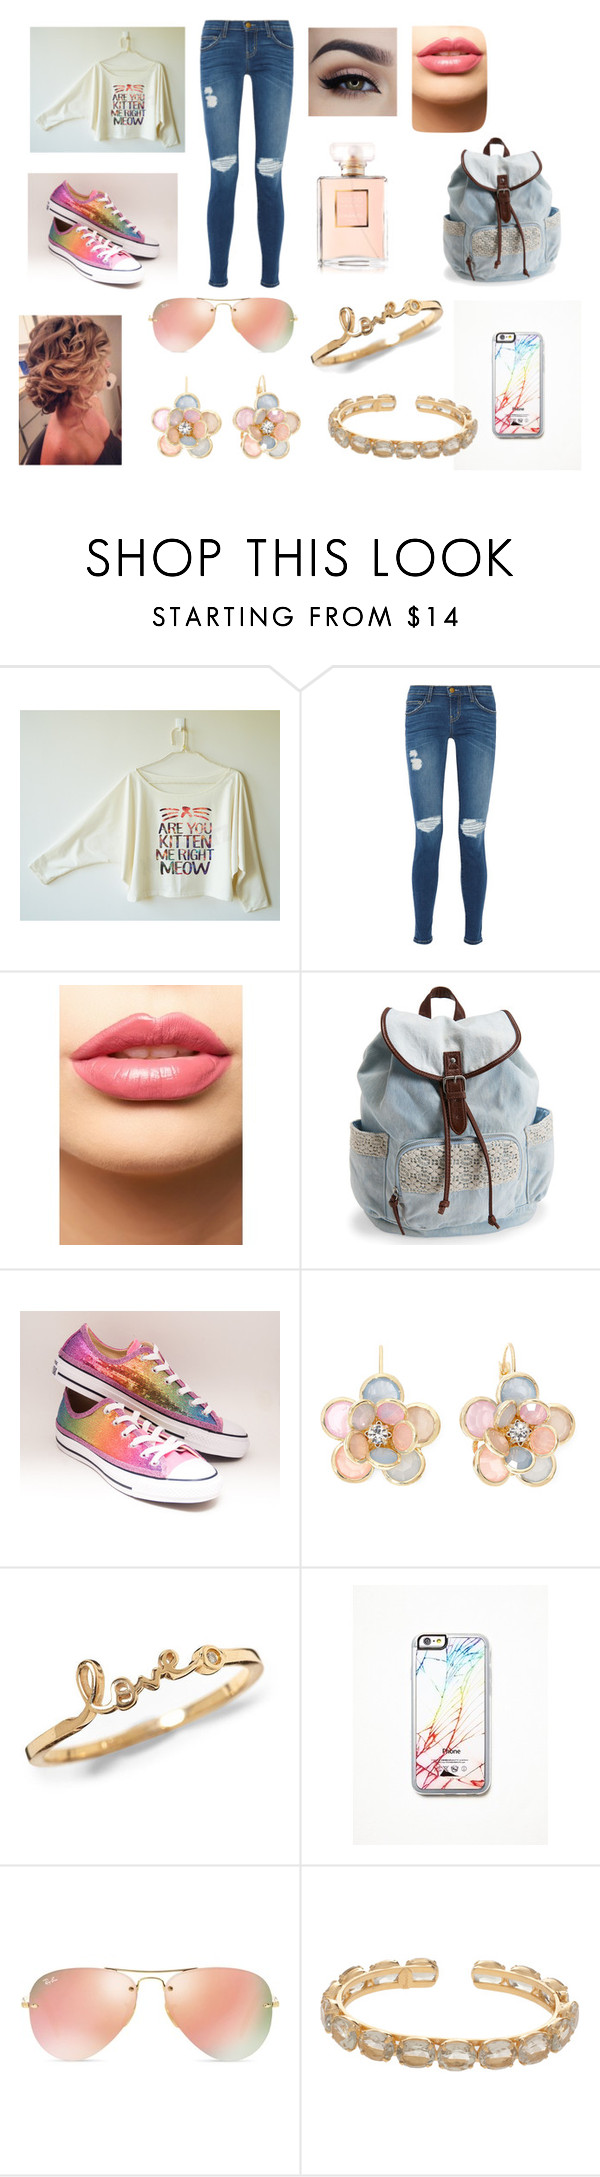 """""""kati"""" by cookie2314 on Polyvore featuring beauty, Current/Elliott, LASplash, Aéropostale, Converse, Mixit, Free People, Ray-Ban and Bounkit"""